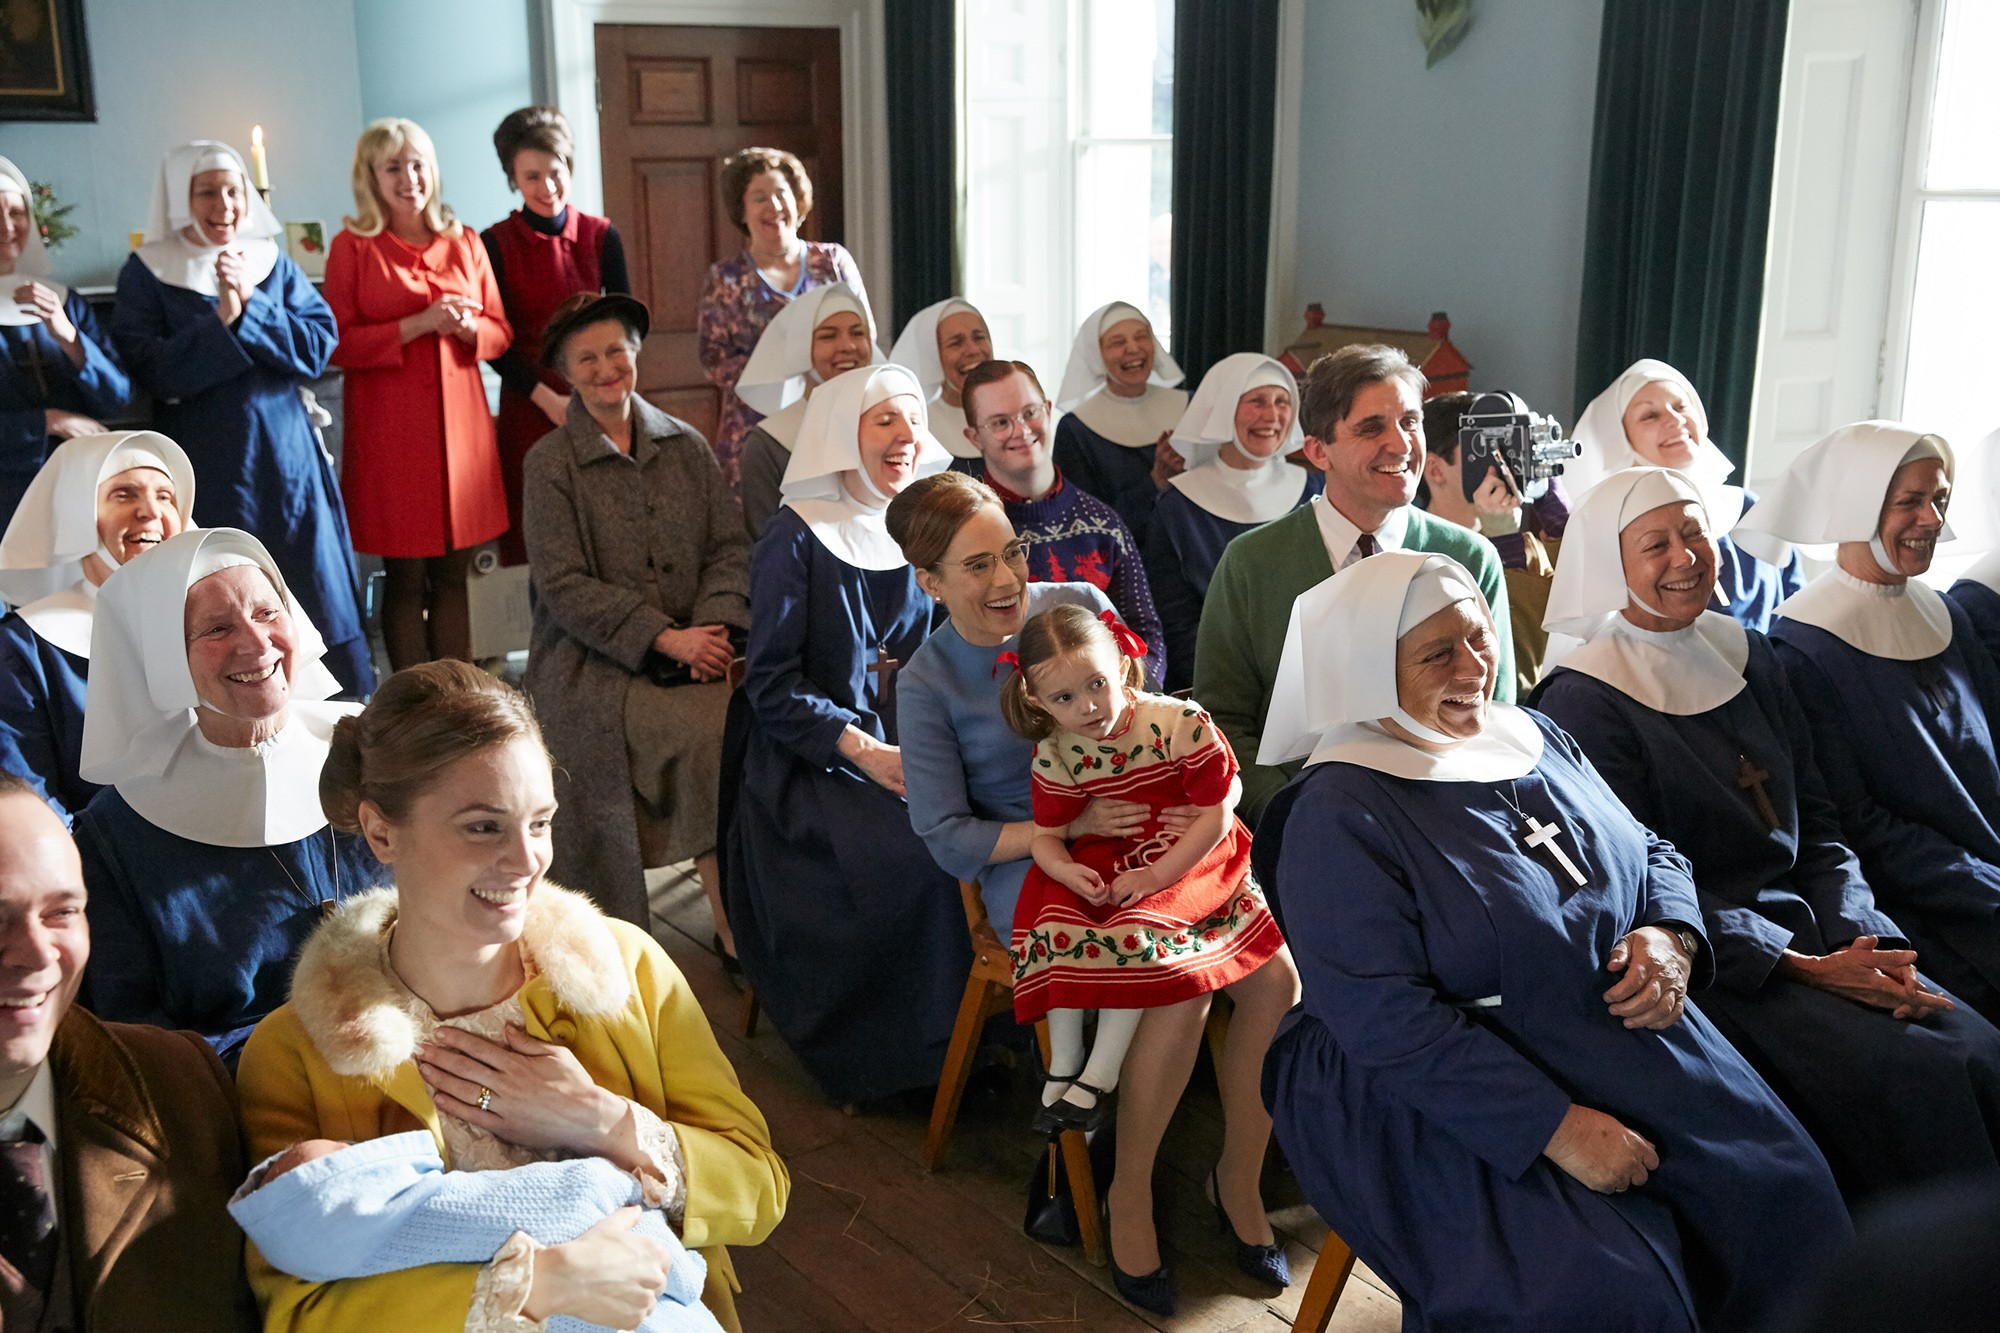 Call the Midwife (BBC/Neal Street Productions, EH)